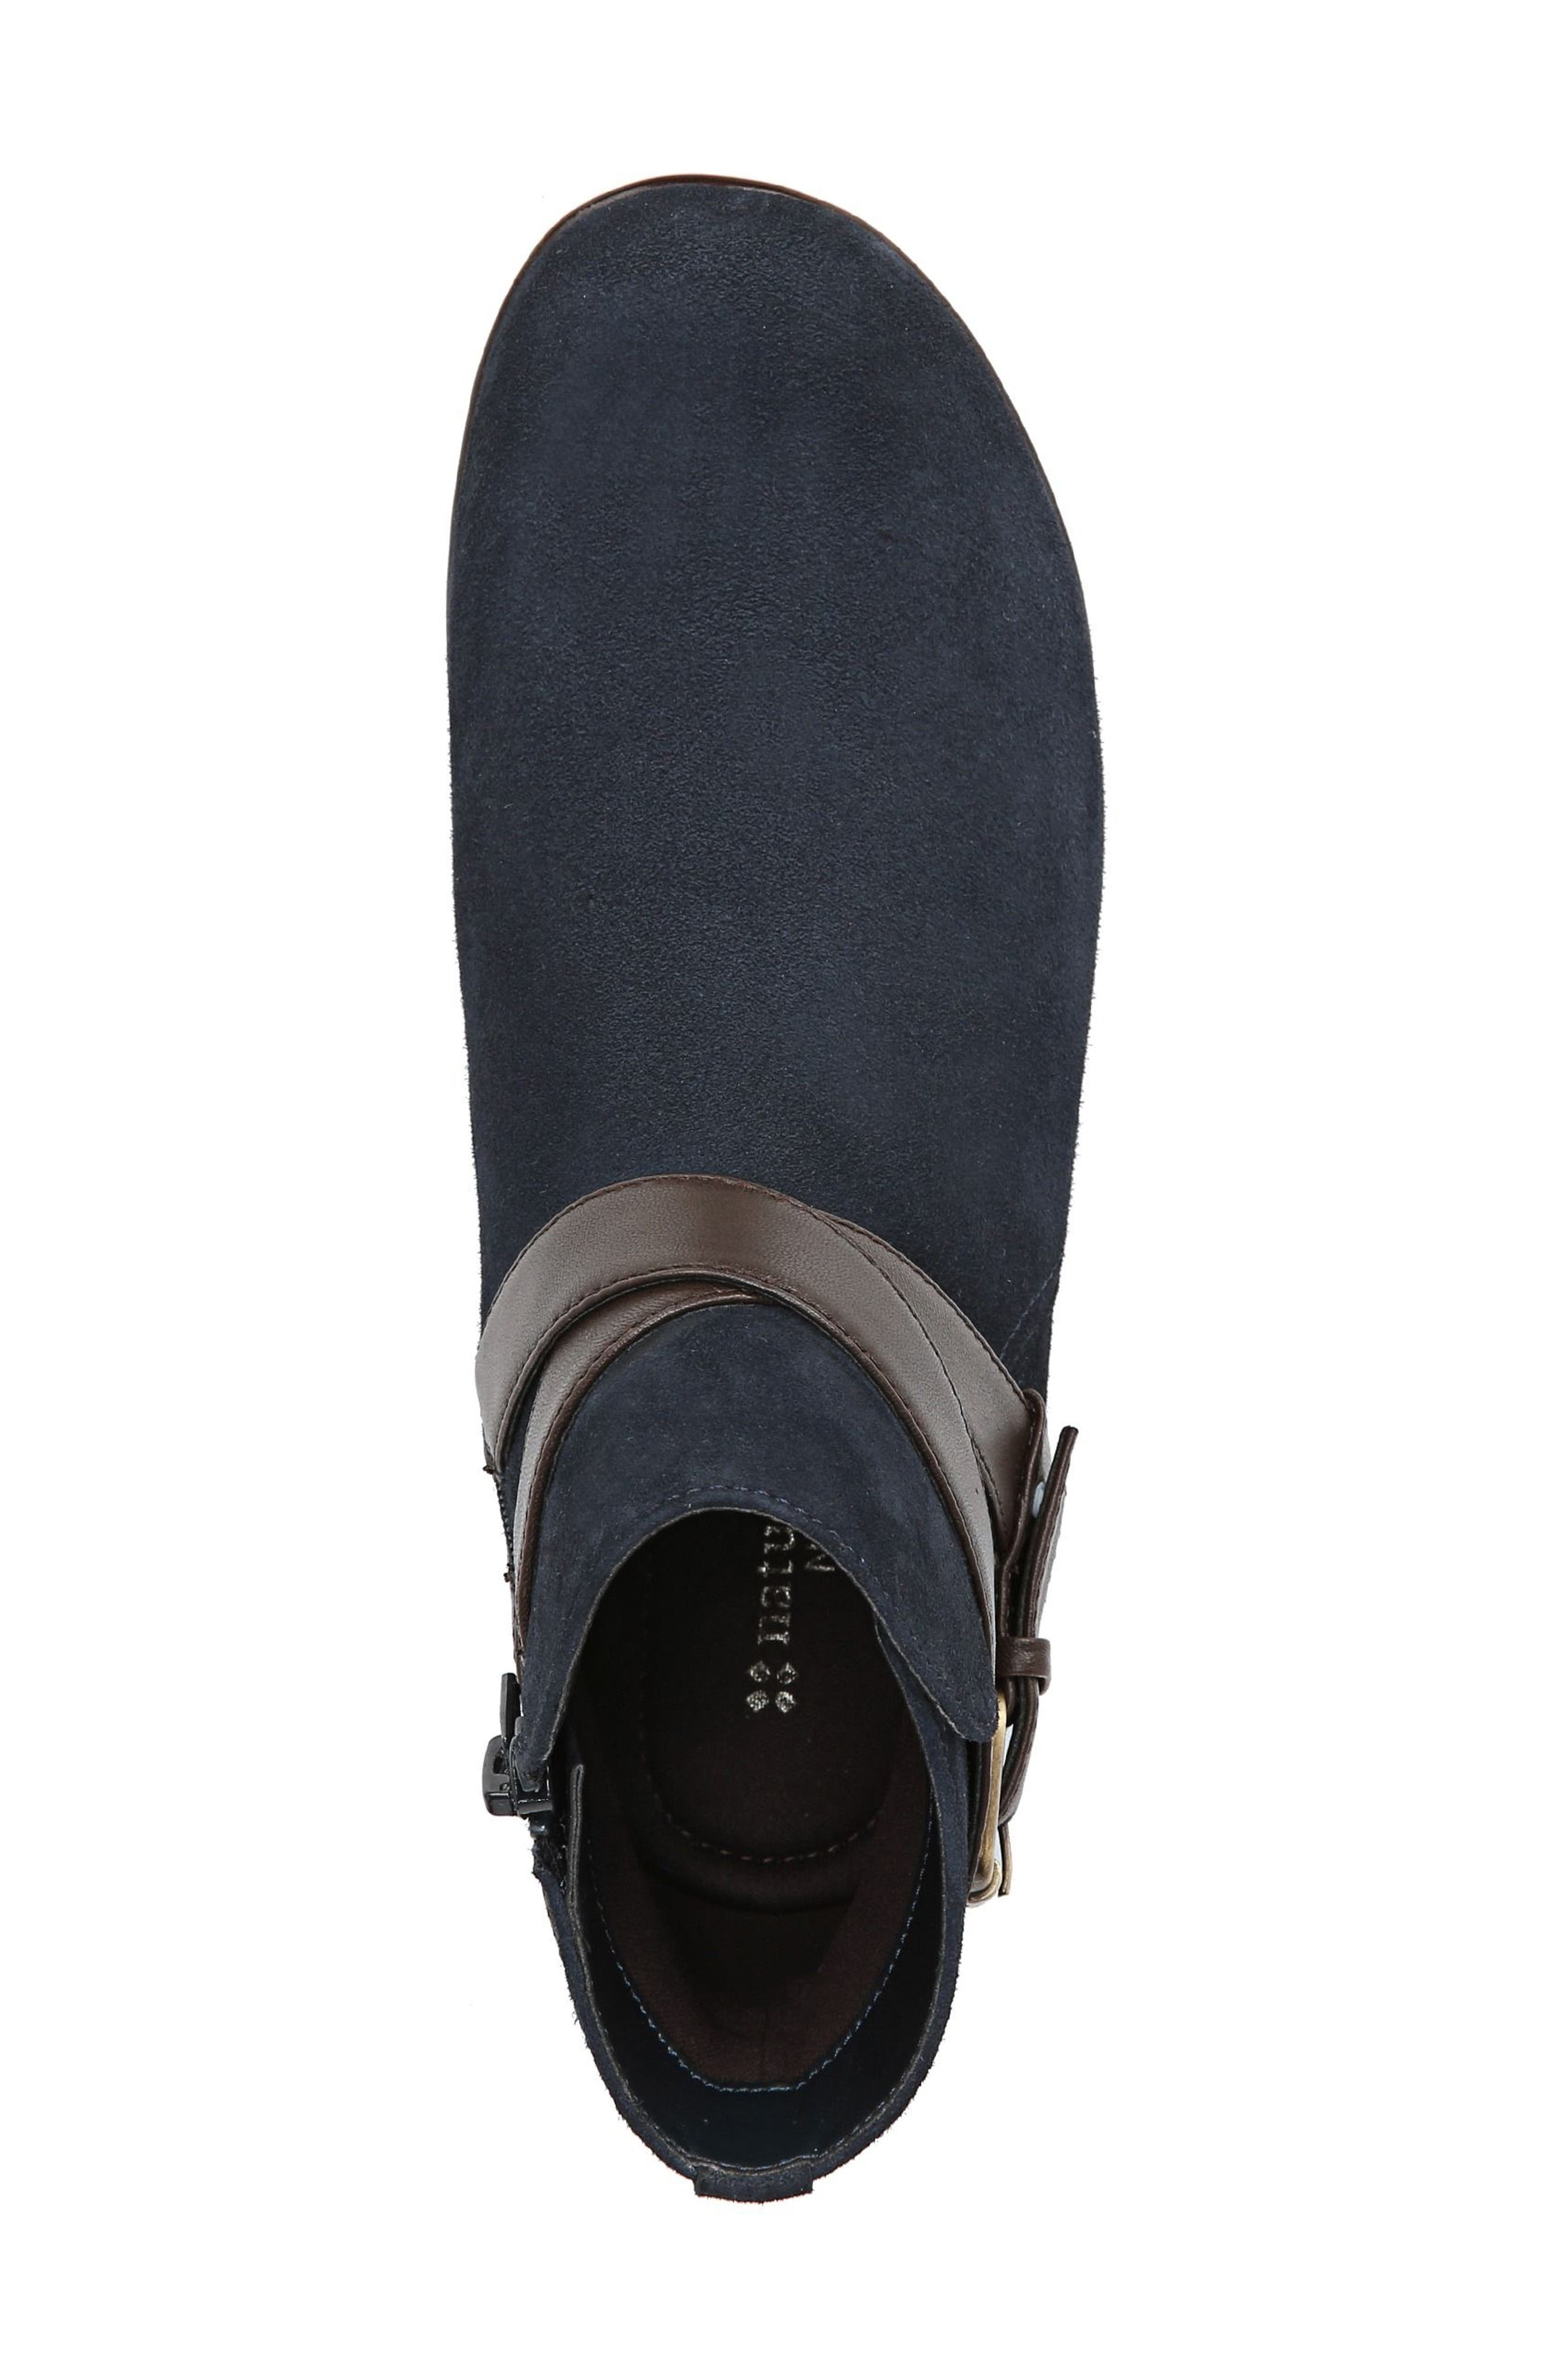 Cassandra Buckle Strap Bootie,                             Alternate thumbnail 5, color,                             NAVY/ BROWN SUEDE